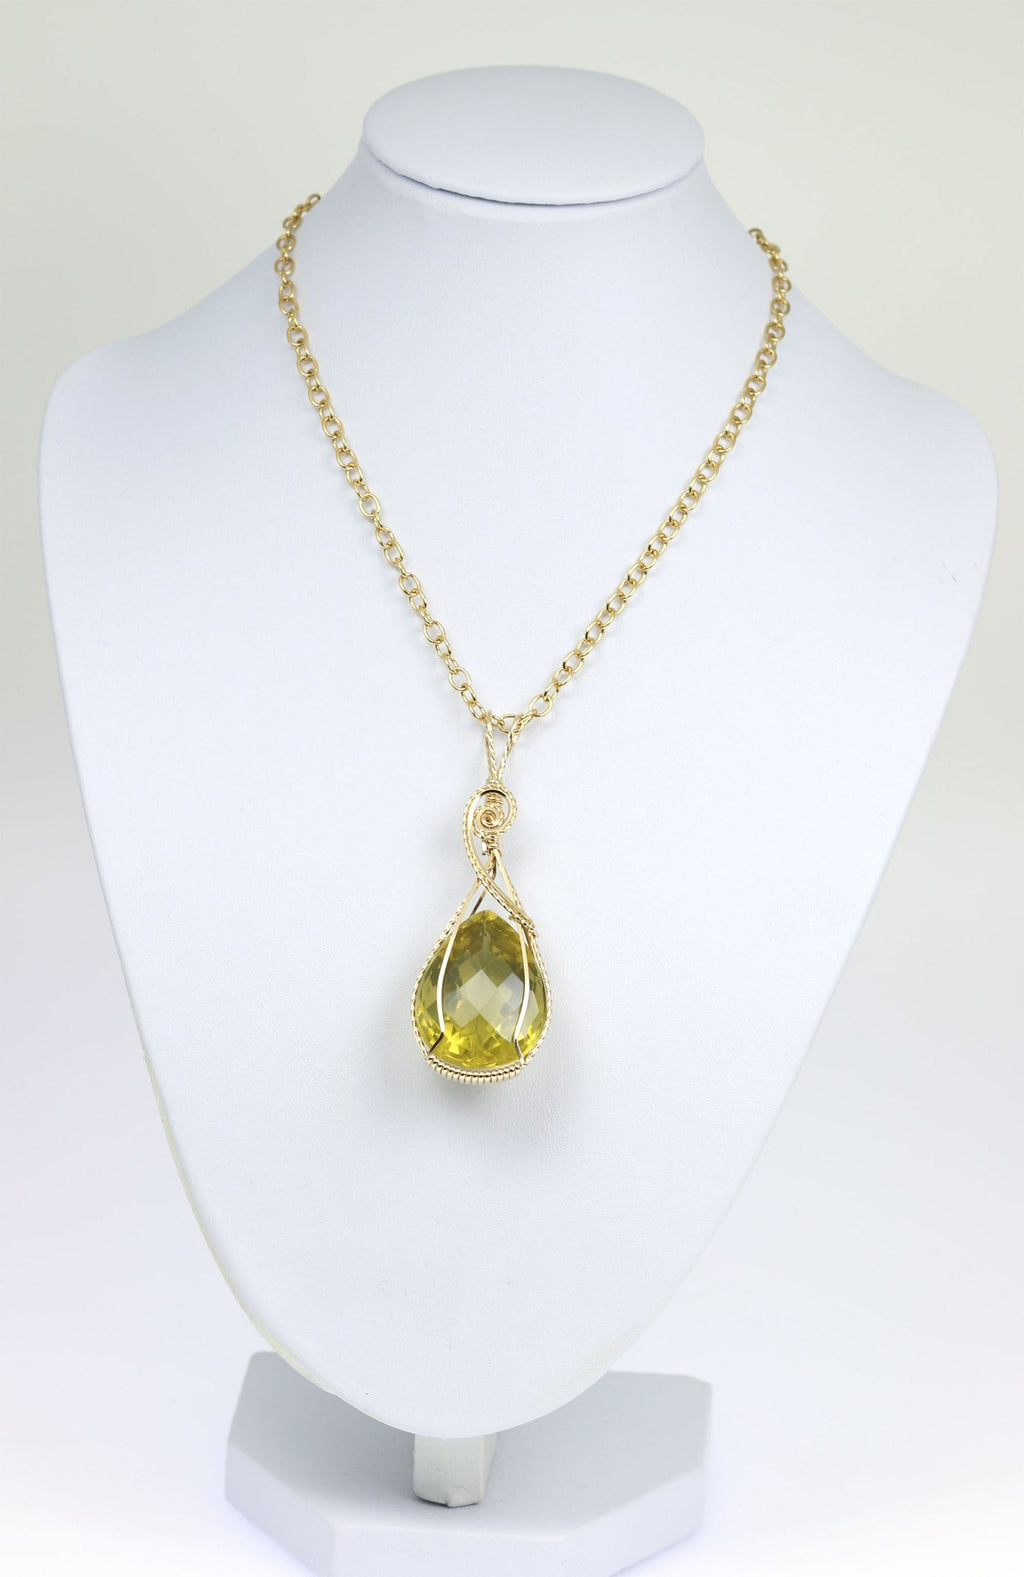 65 CT Green Gold Quartz 14K Gold-filled Pendant - johnsbrana - 3